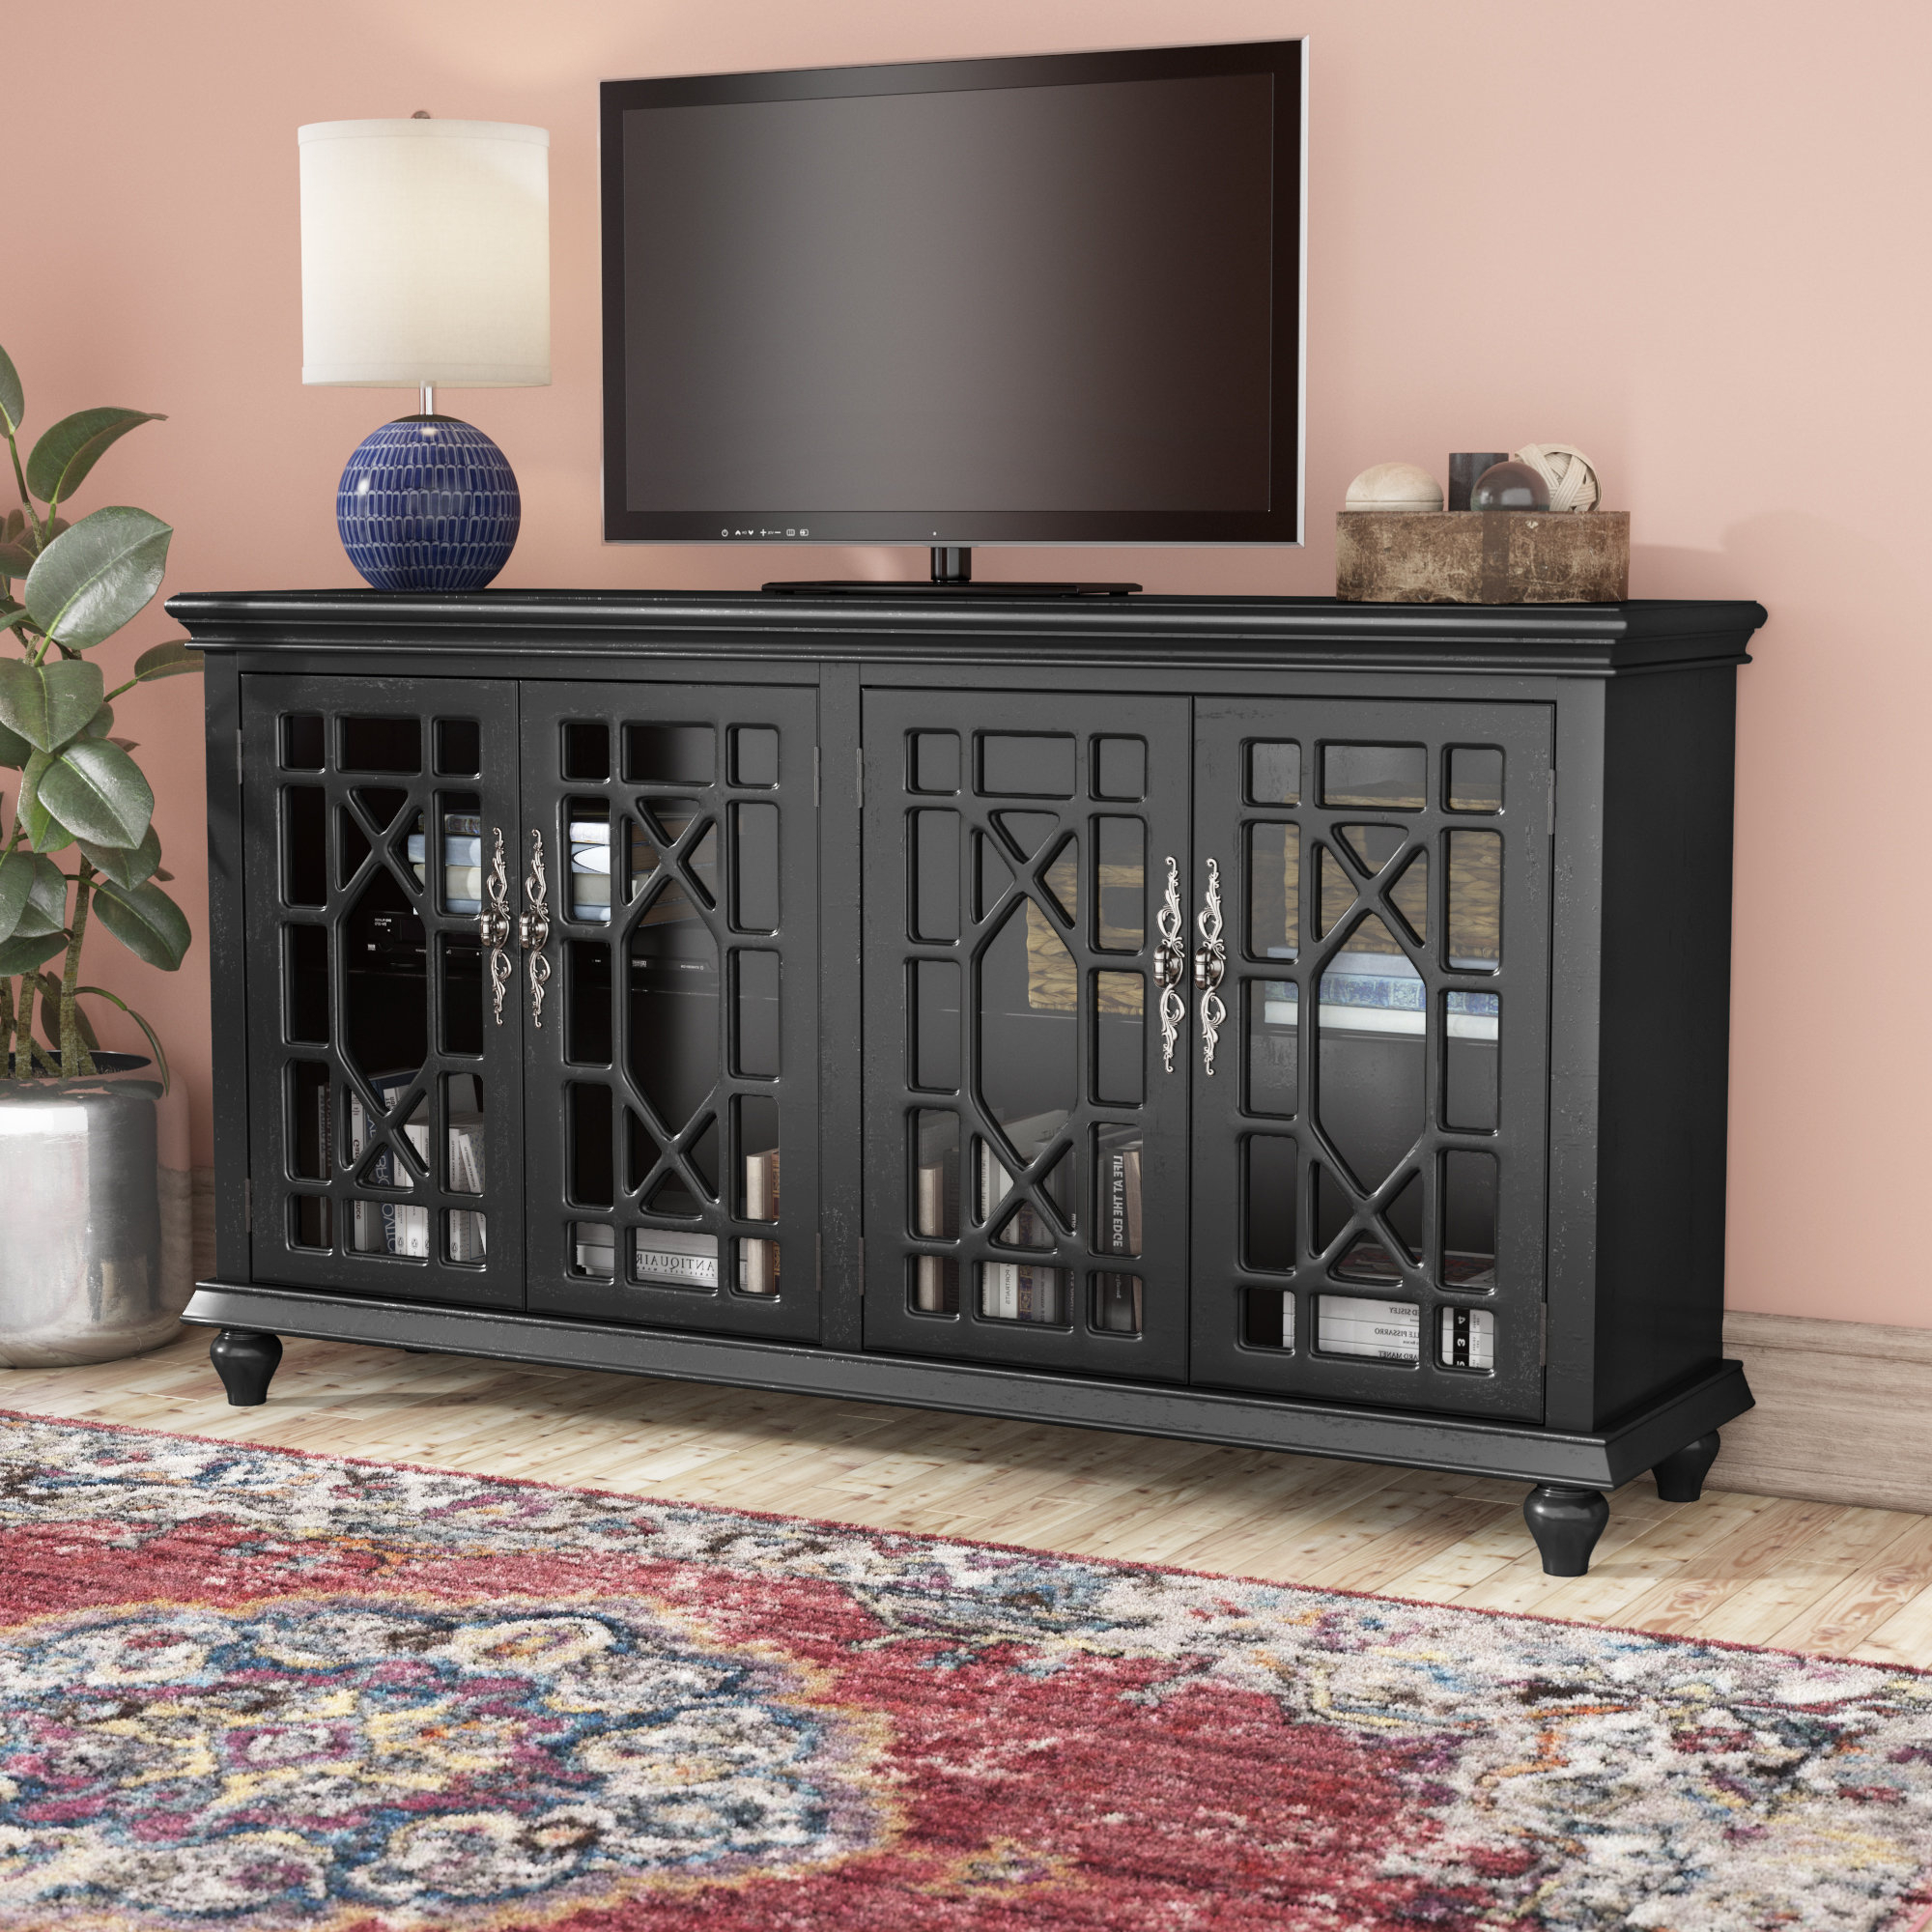 Tall Tv Stands You'll Love | Wayfair For Canyon 64 Inch Tv Stands (View 16 of 20)